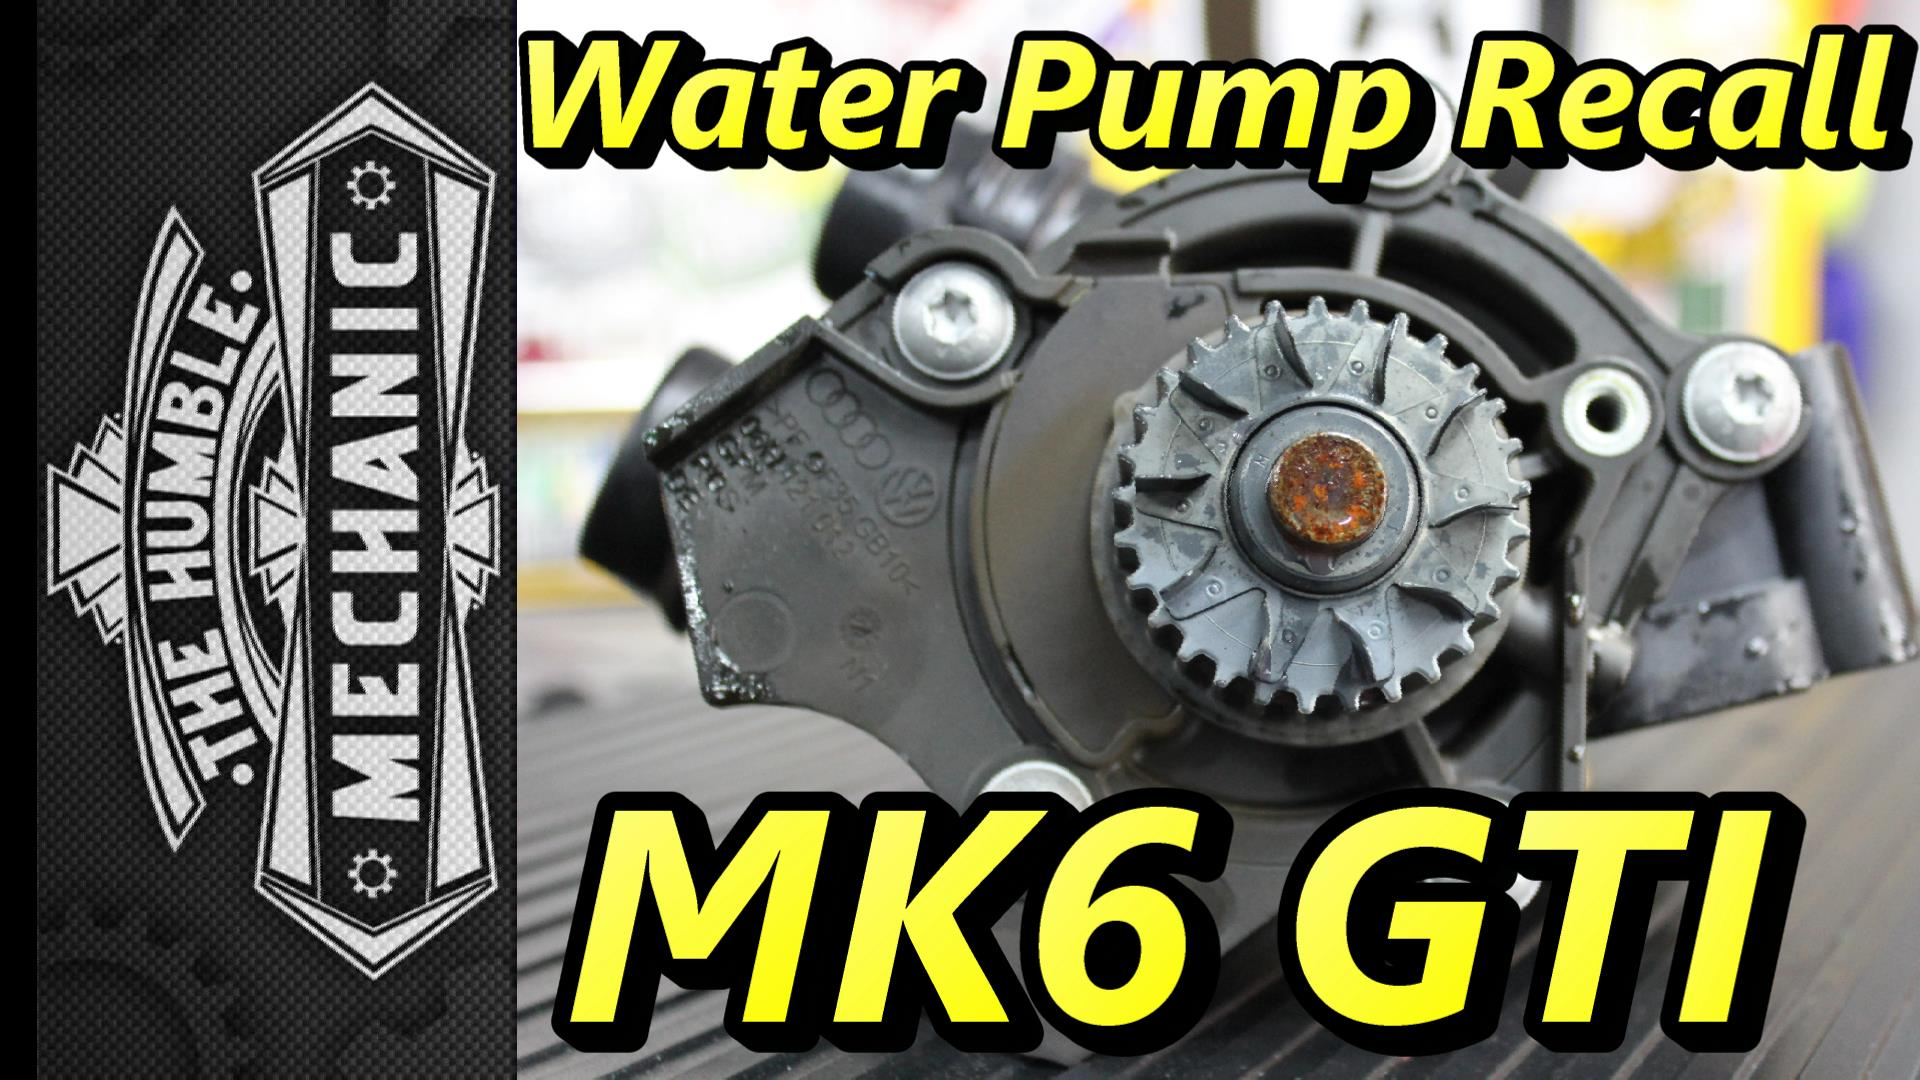 Water Pump Recall Mk6 Gti Podcast Episode 88 Humble Mechanic